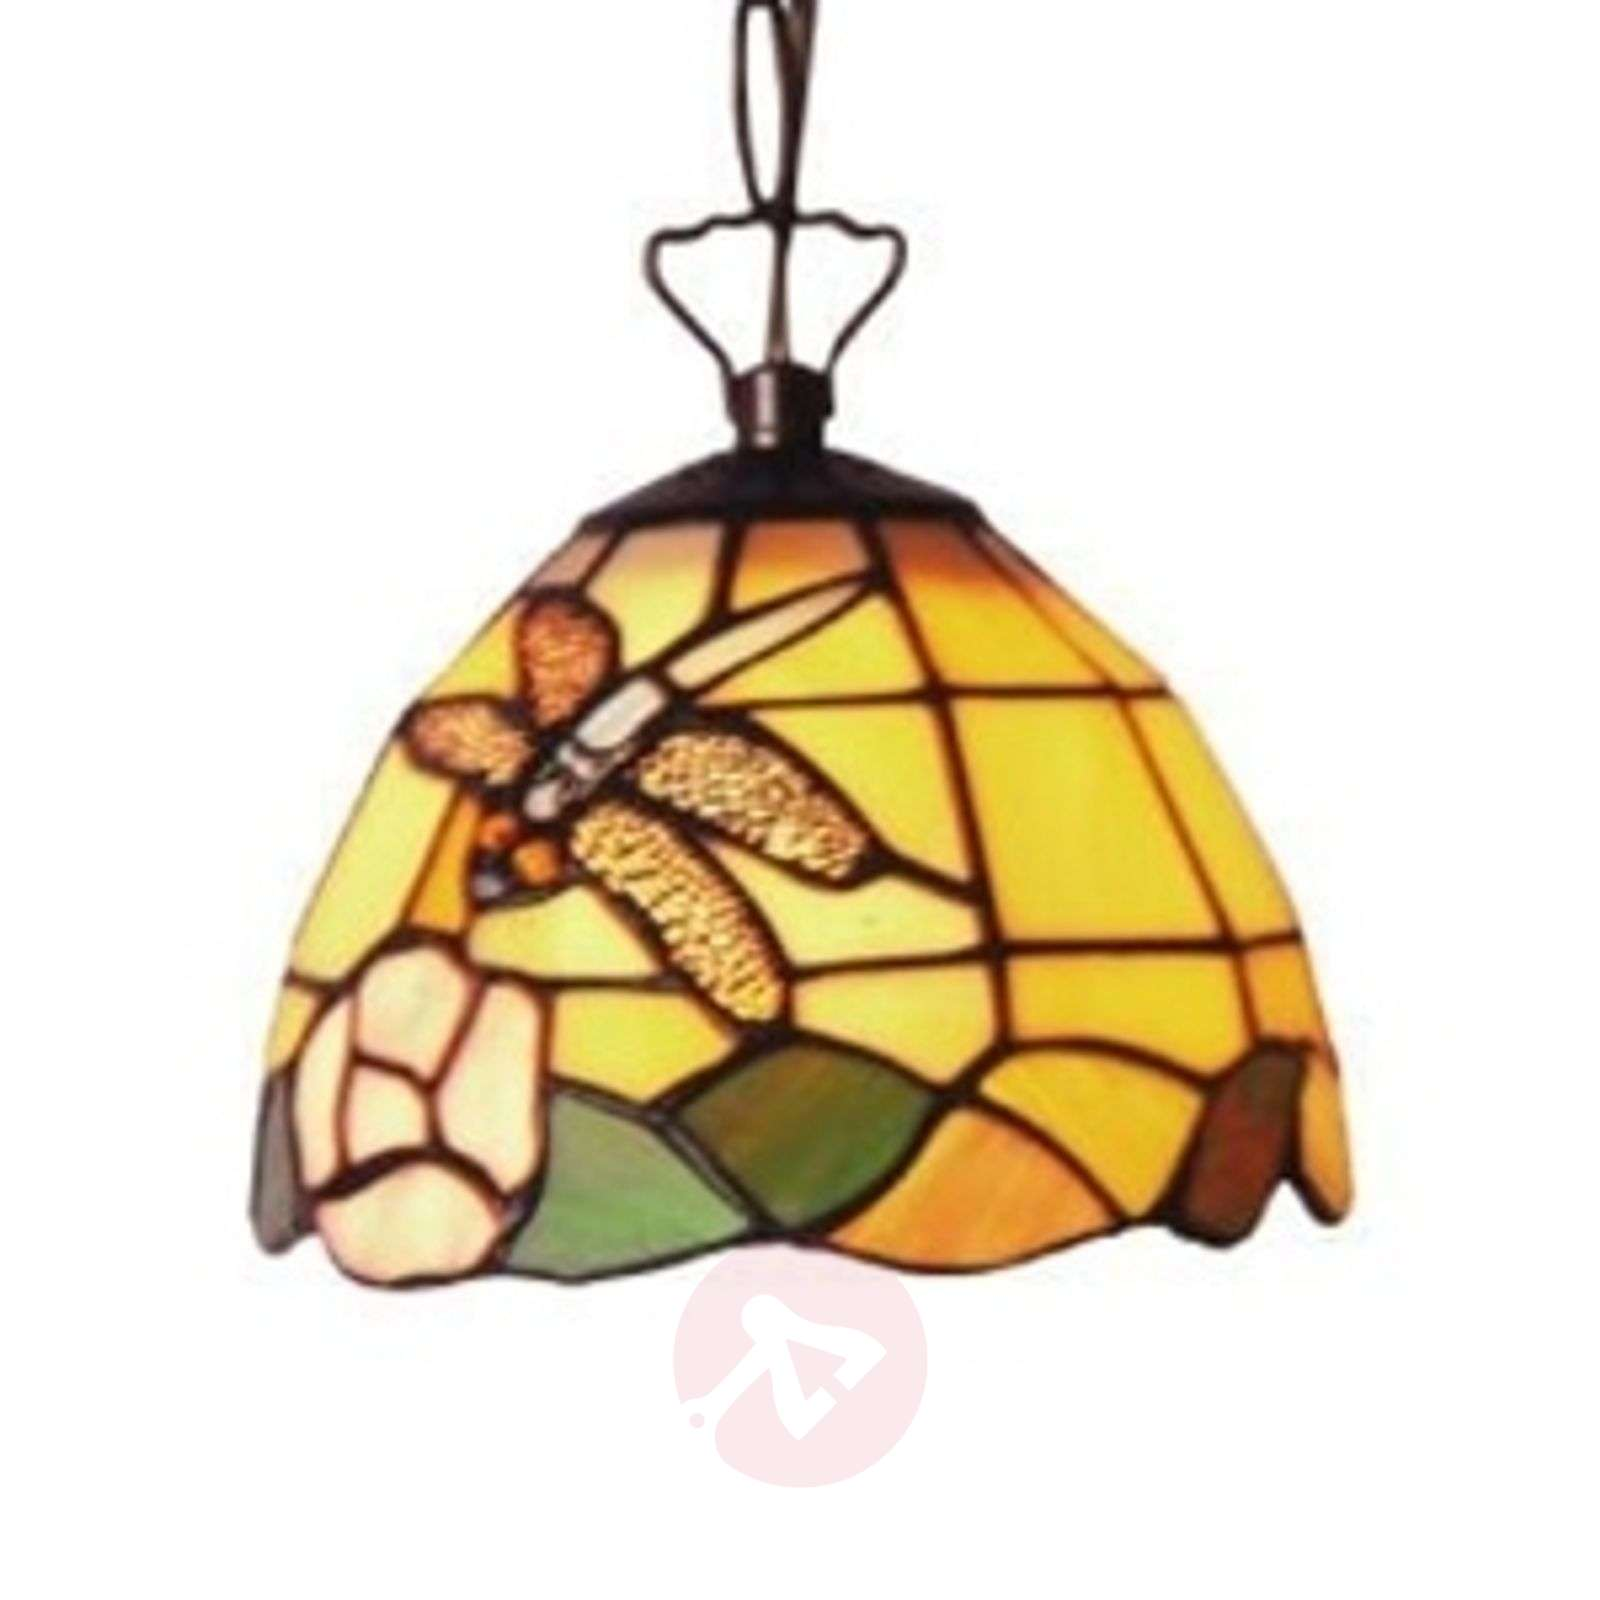 Decorative Tiffany-style hanging light LIBELLE-1032066-01